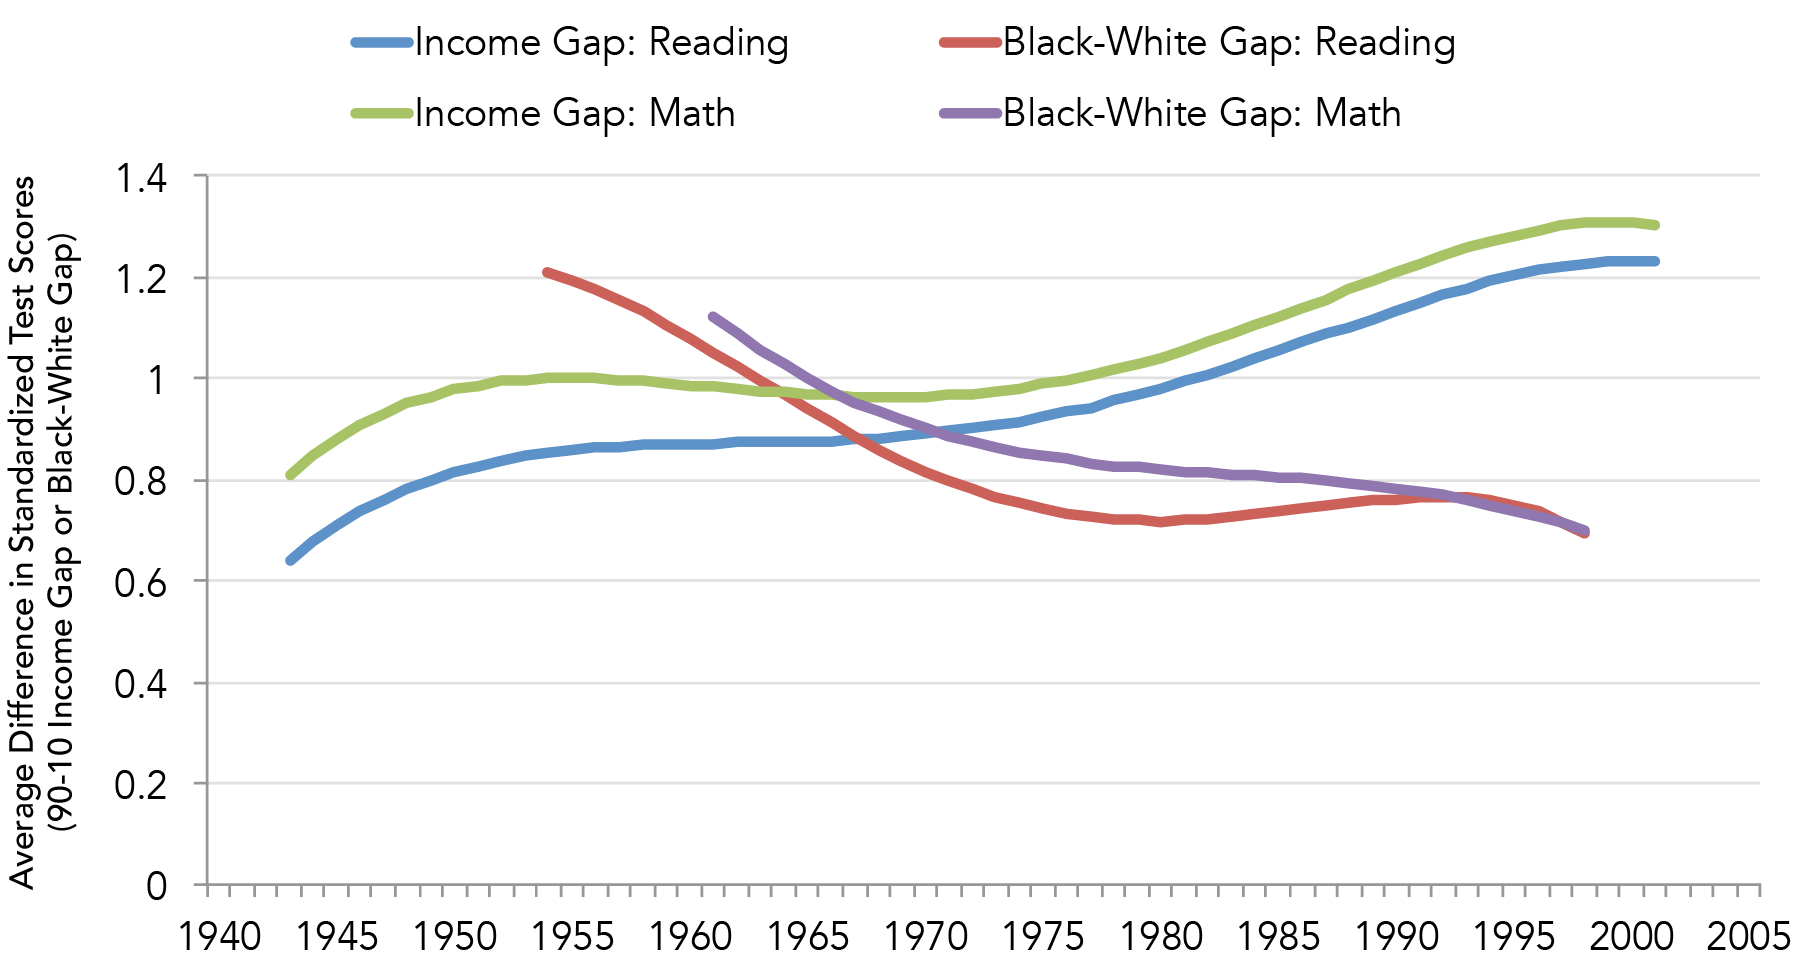 Comparing the Income and Black-White Achievement Gaps